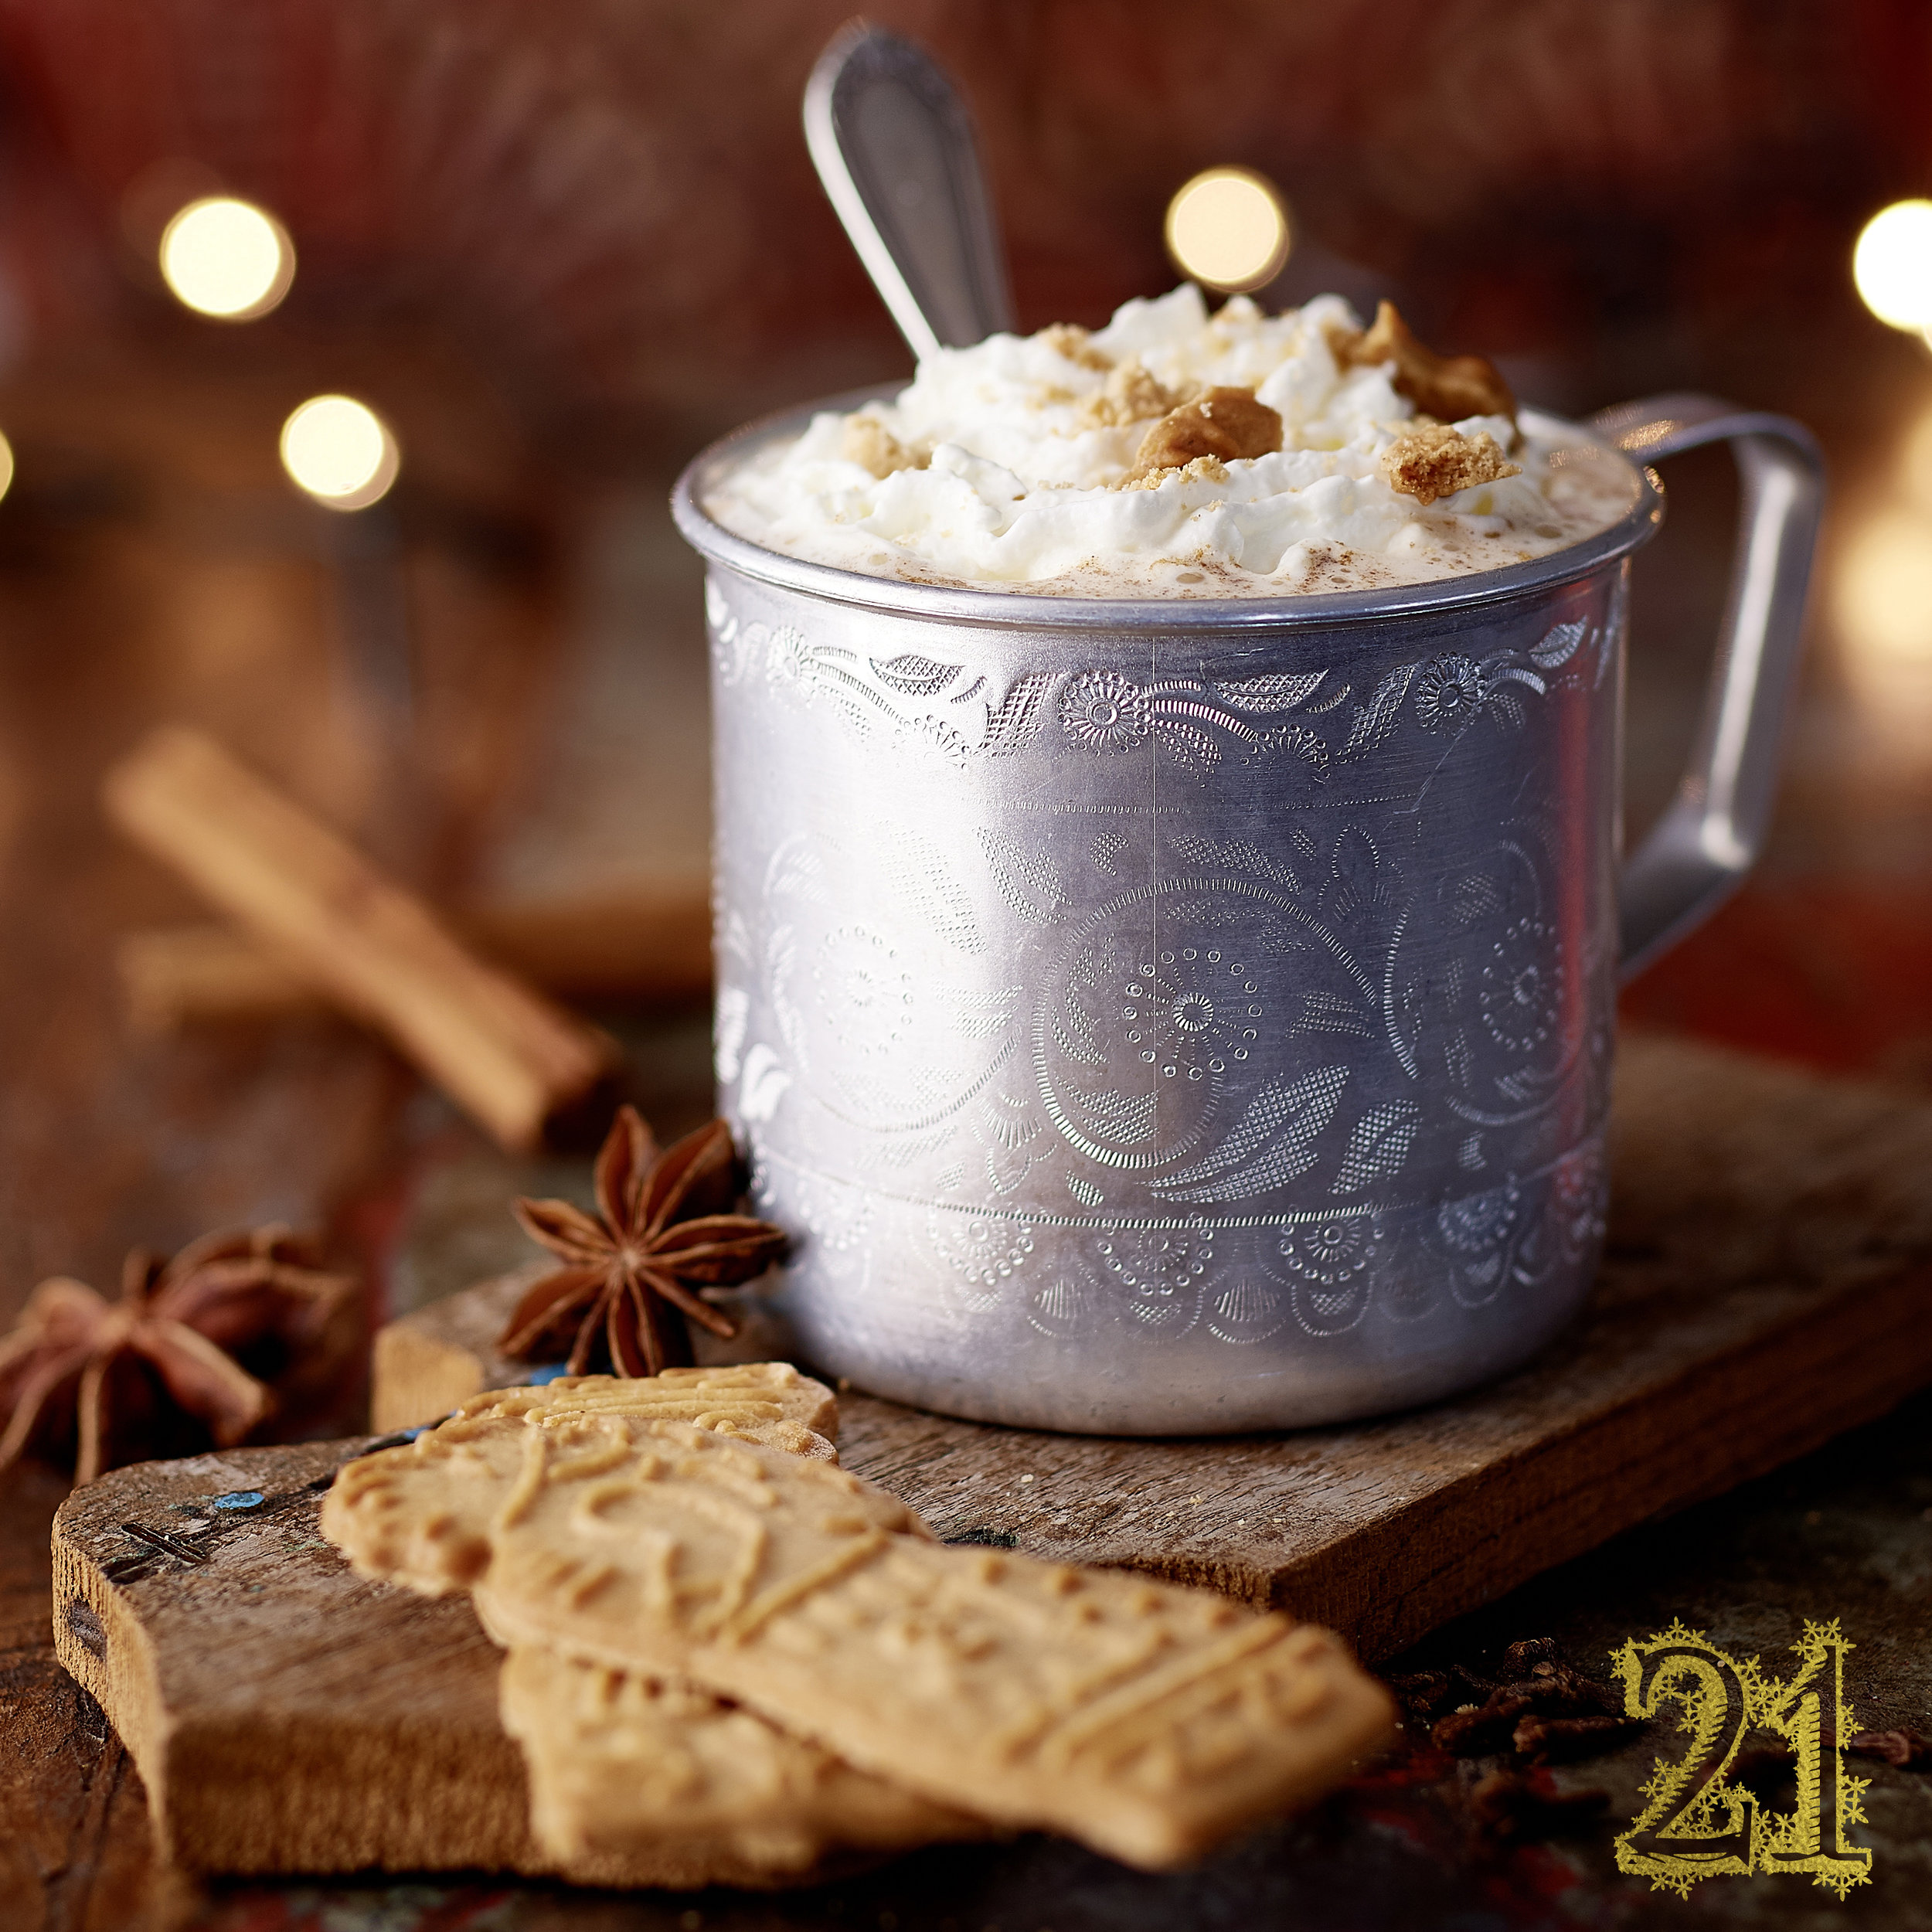 21.Ginger Bread Latte copy.jpg